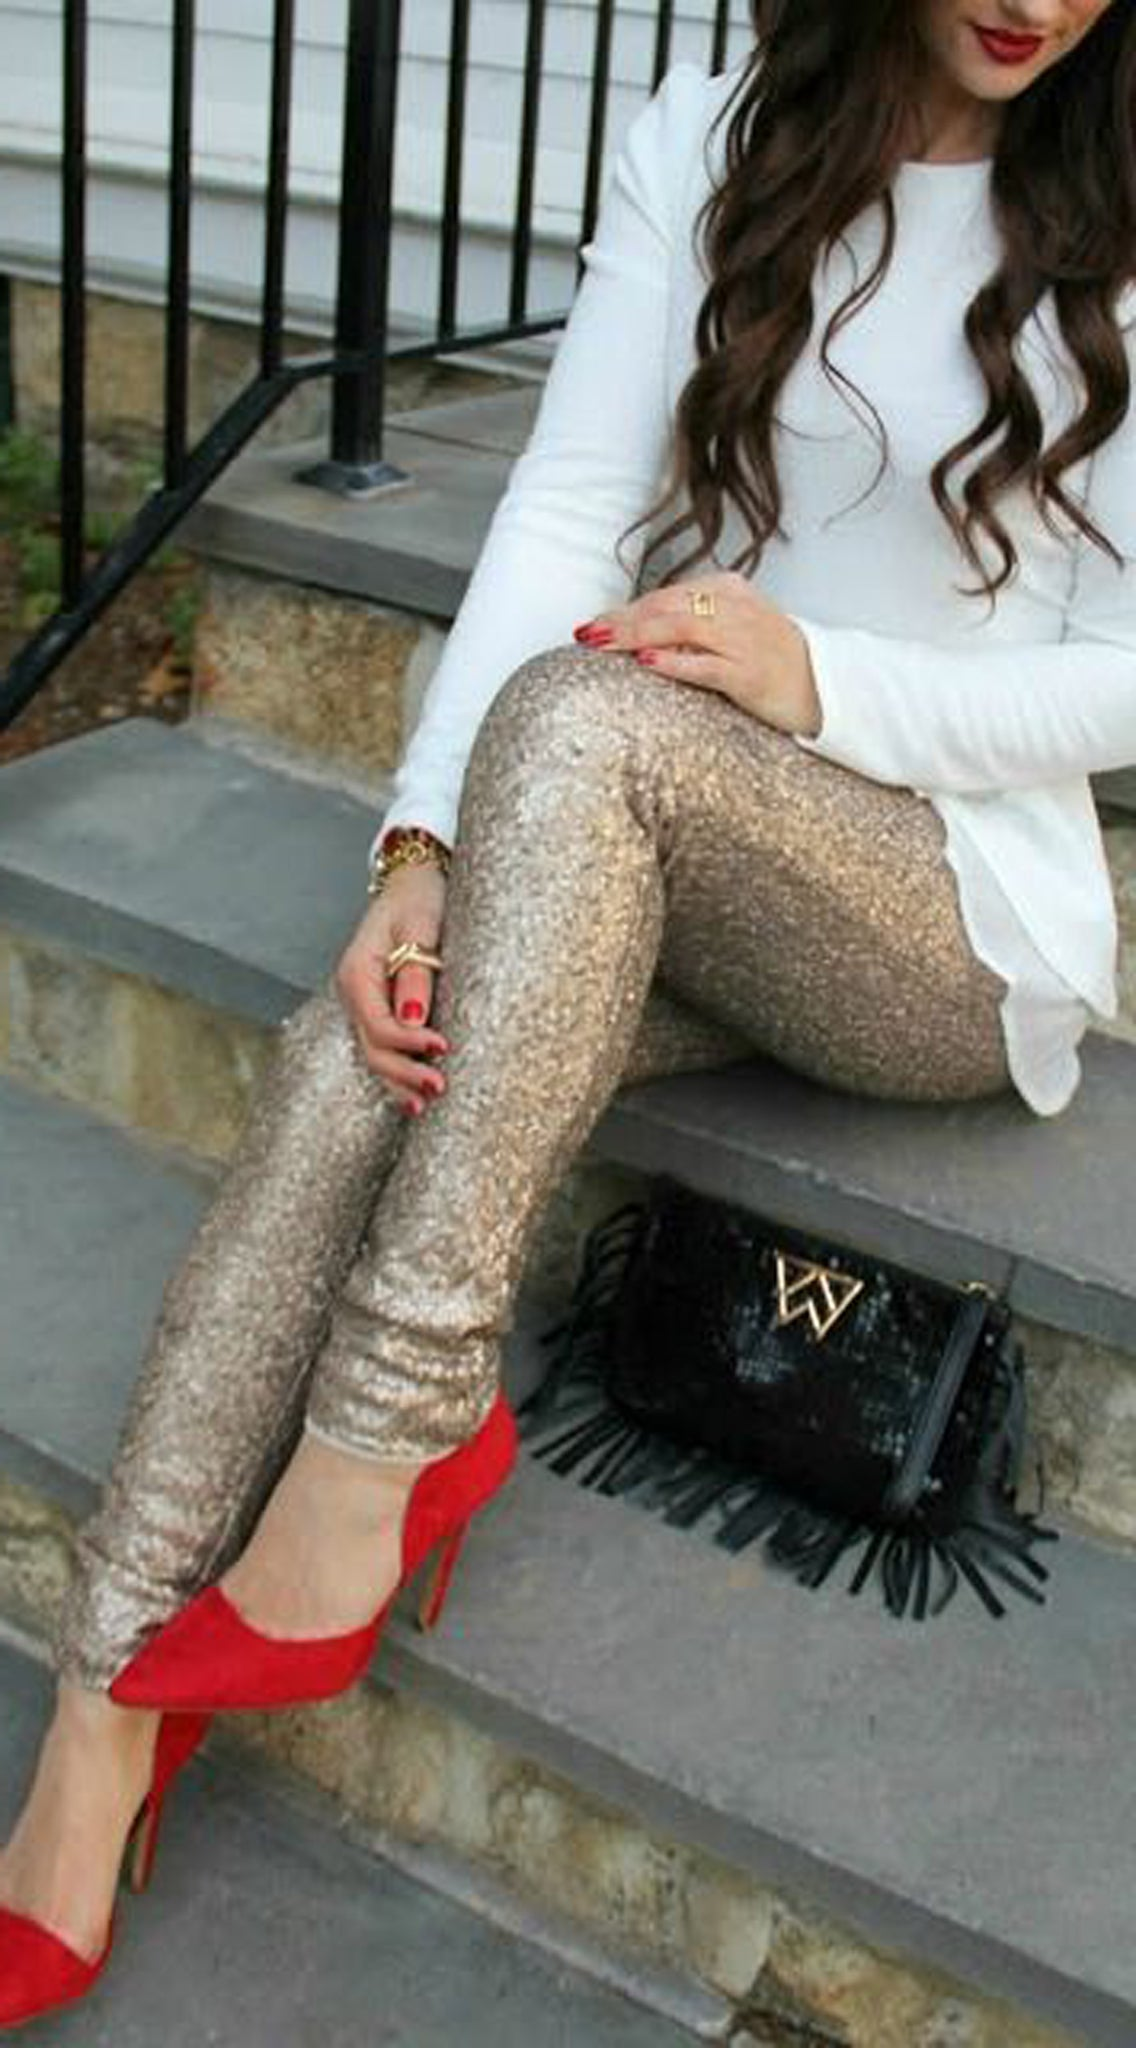 Cute Outfit Ideas for Christmas Party New Years Eve - Sparkly Gold Sequin Pants - Long White Tunic - Red High Heels - MyBodiArt.com